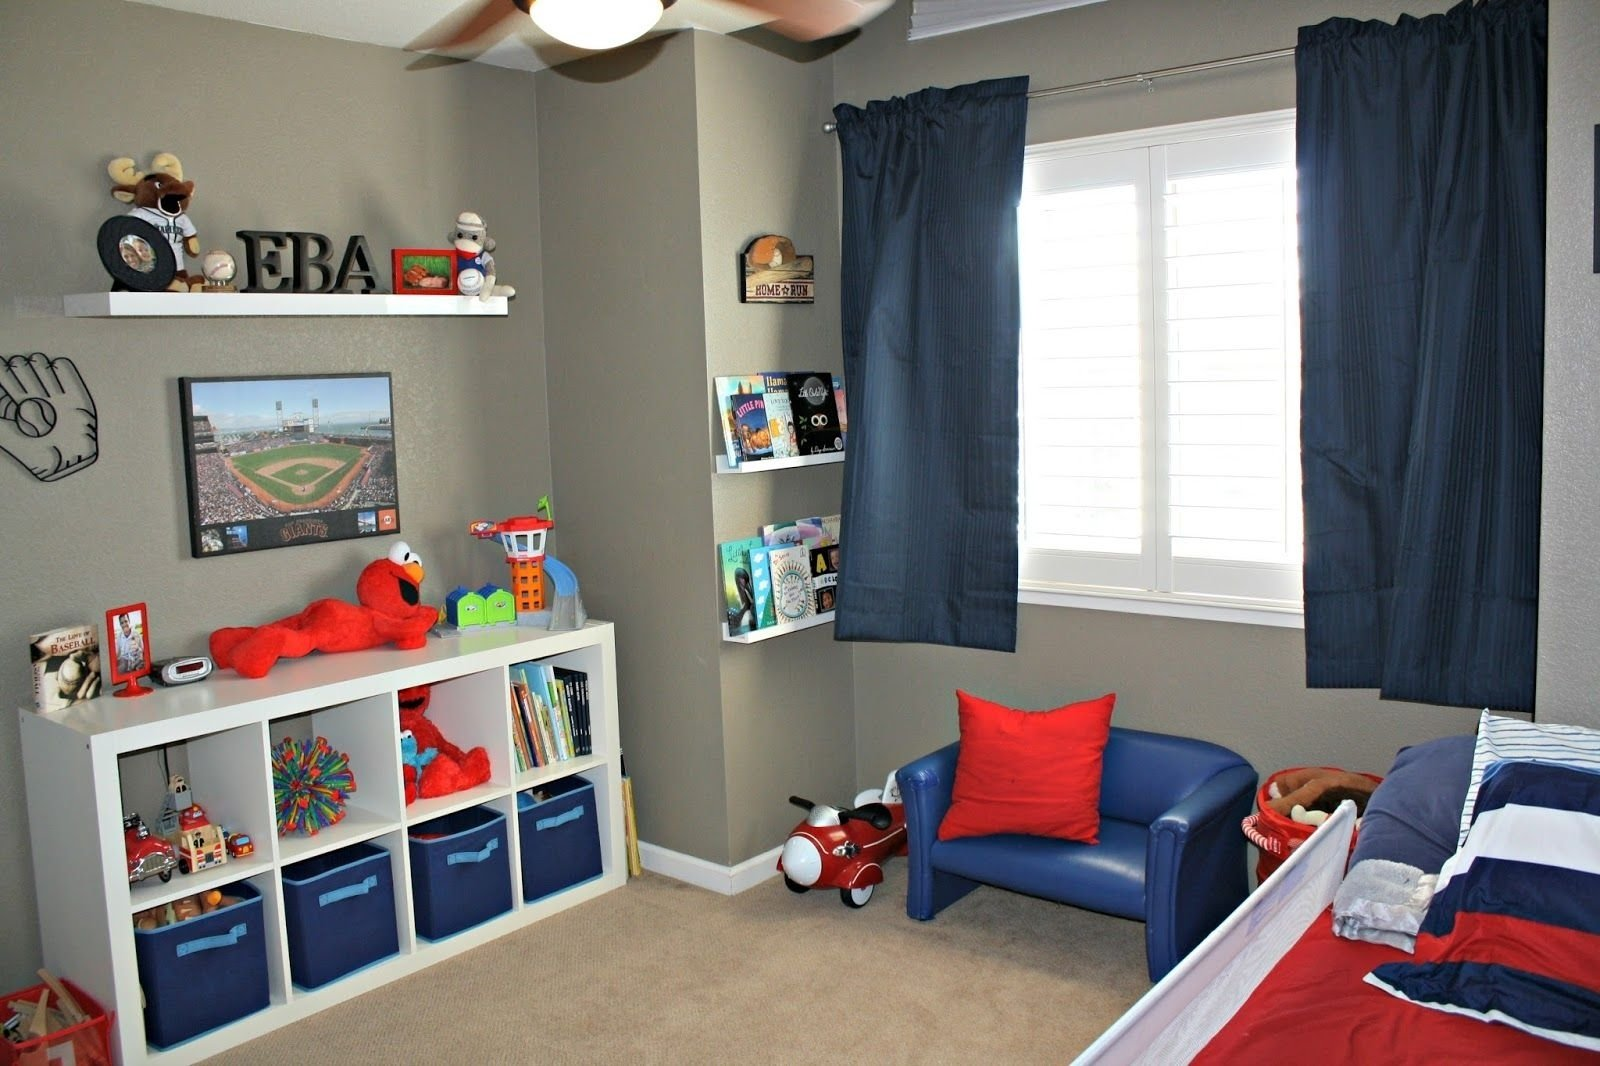 10 Fantastic Toddler Room Ideas For Boys this doesnt even begin to scrape the surface of how awesome ljs 1 2021